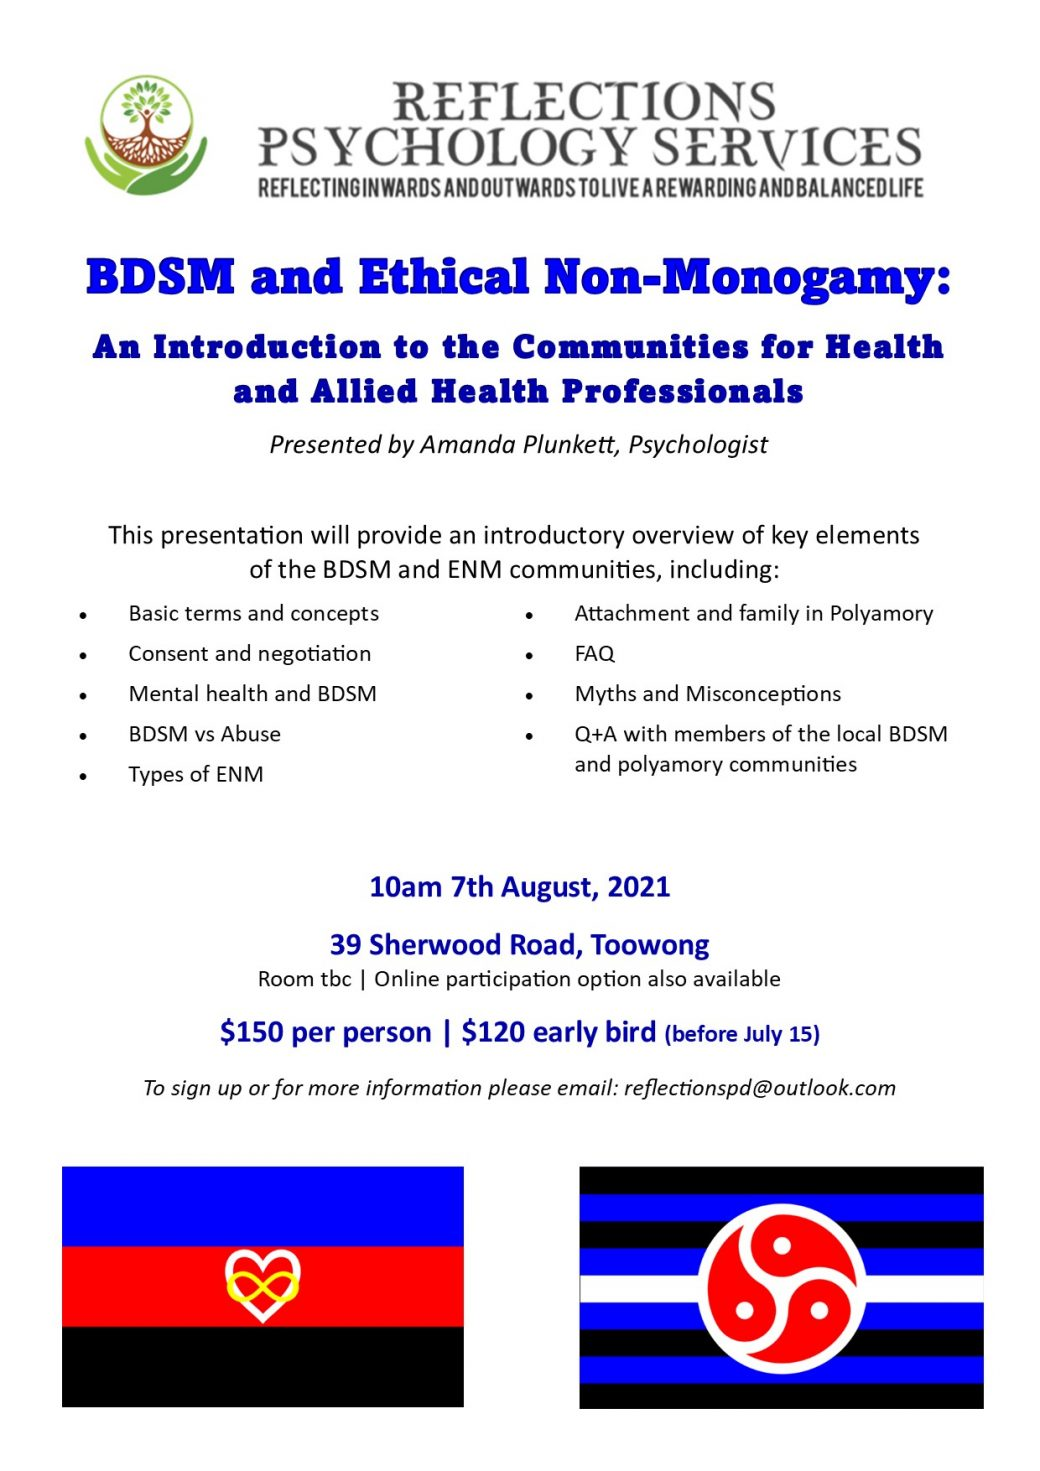 Professional Development – Introduction to BDSM and ENM for Health and Allied Health Professionals